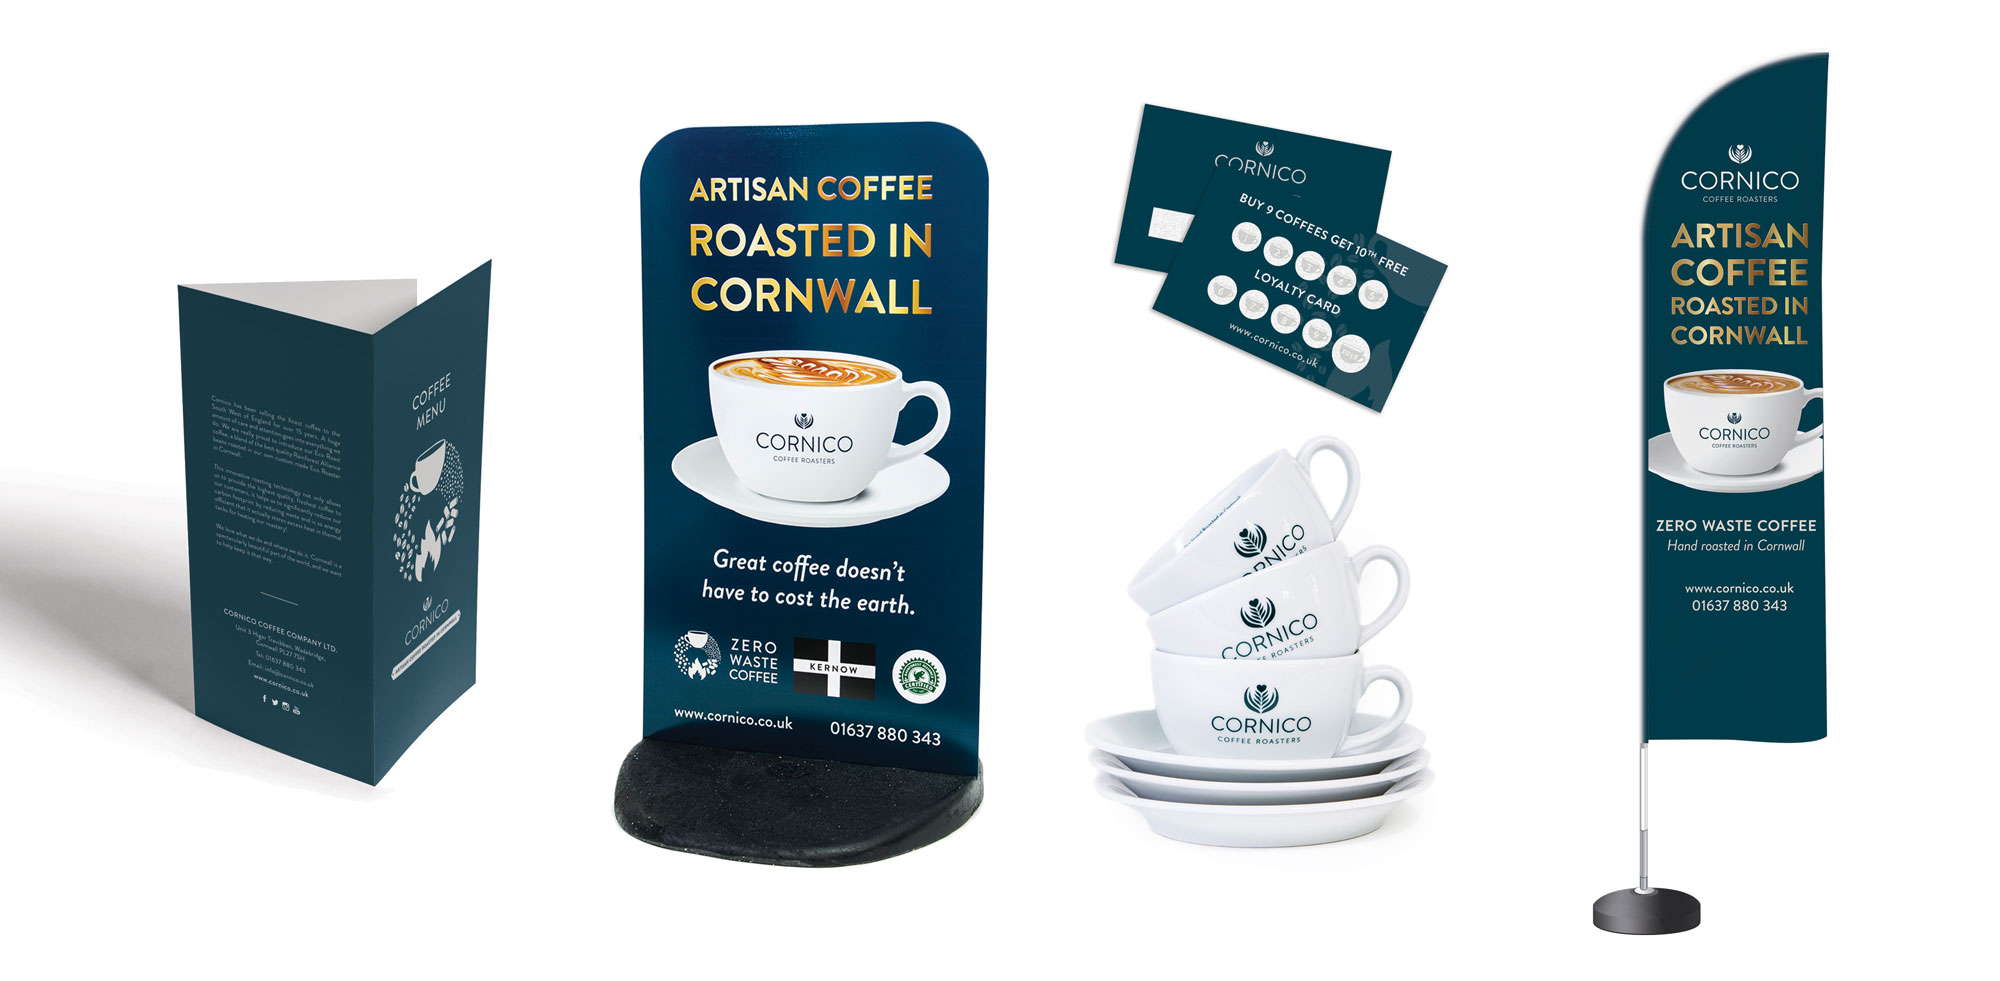 Point of sale items from Cornico Coffee